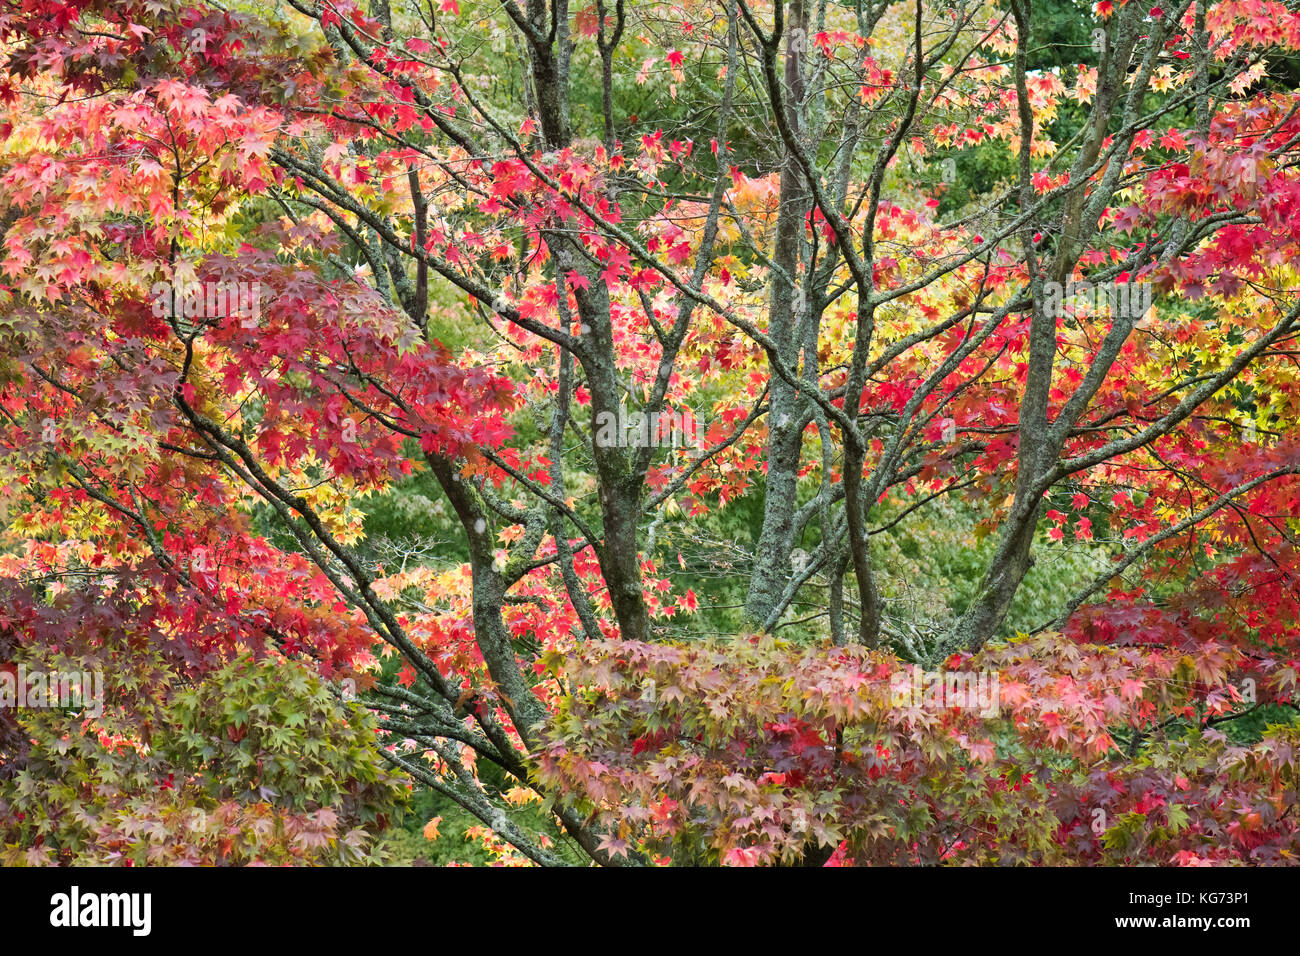 dramatic autumn colours on Acer Palmatum ssp amoenum at Westonbirt Arboretum, Gloucestershire, England, UK - Stock Image